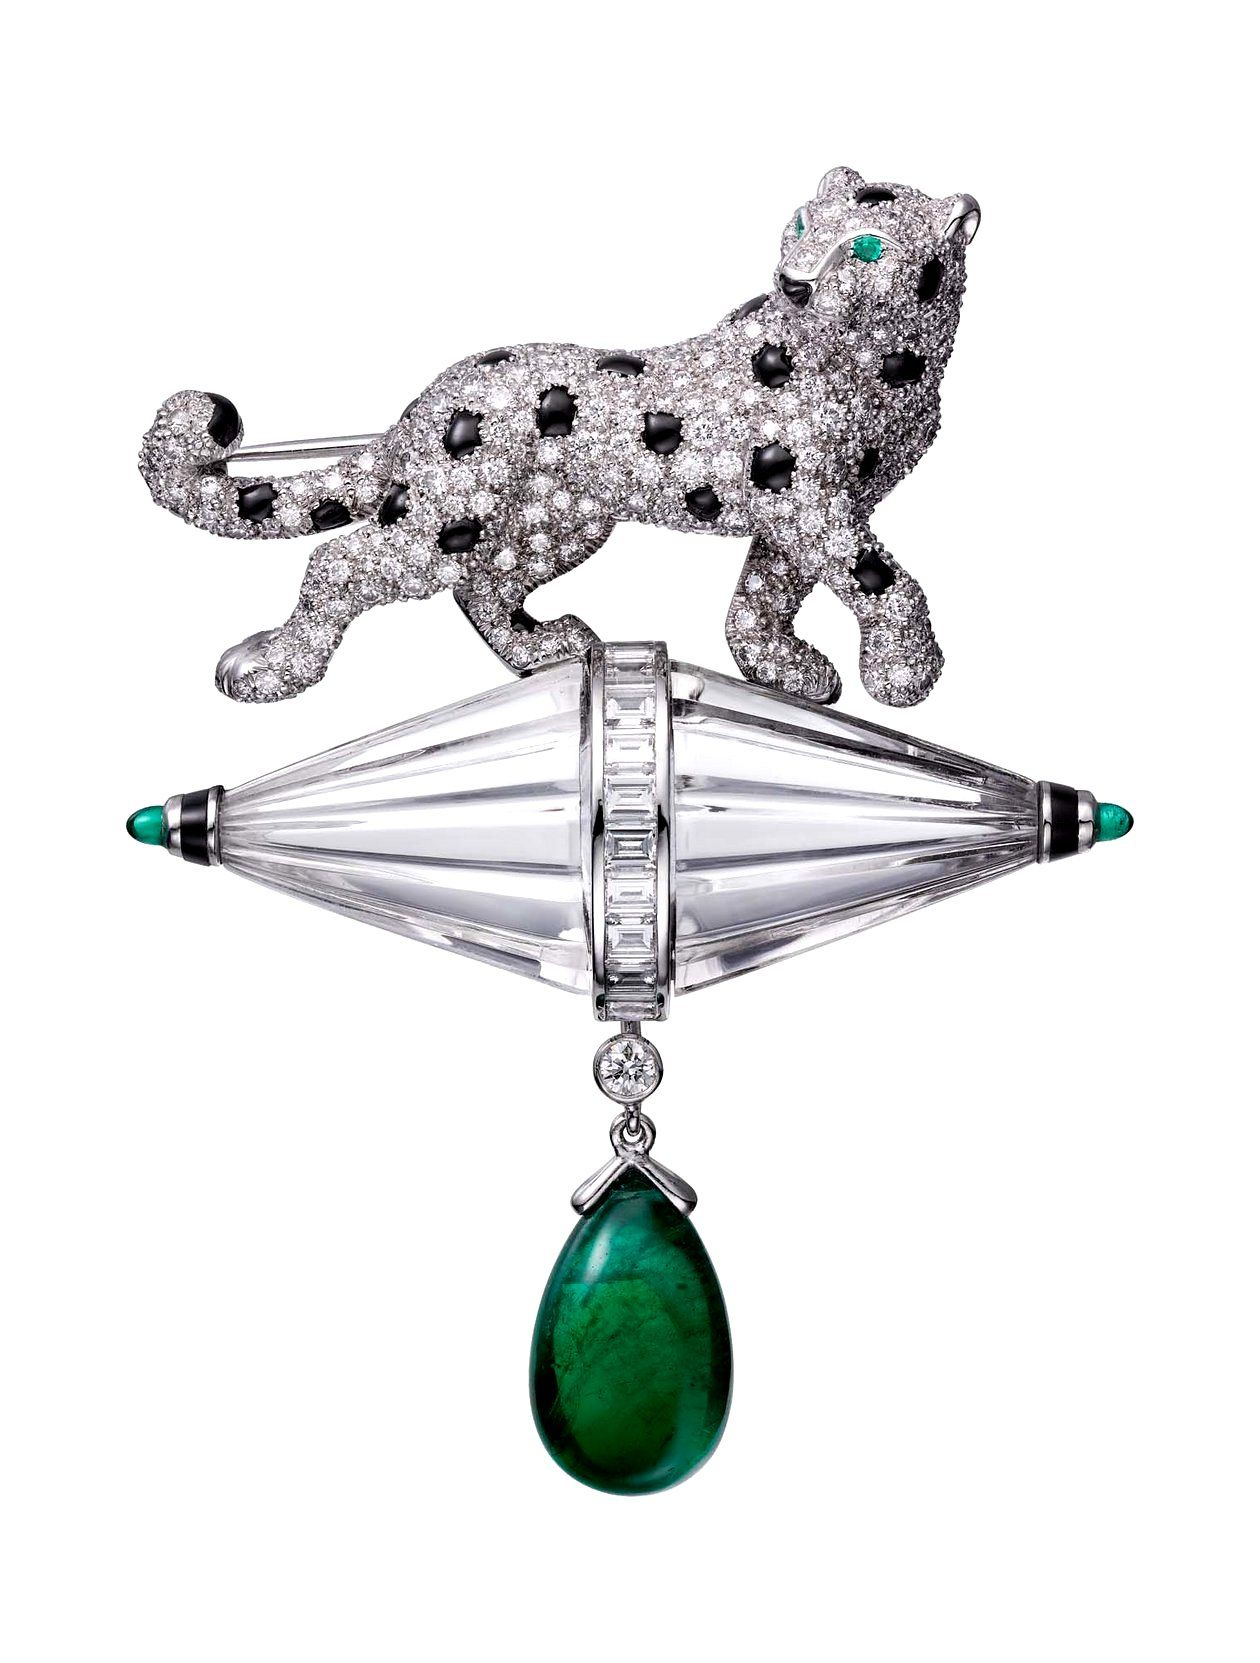 s sotheby lot cartier ecatalogue web auctions jewels brooch magnificent current en esthl